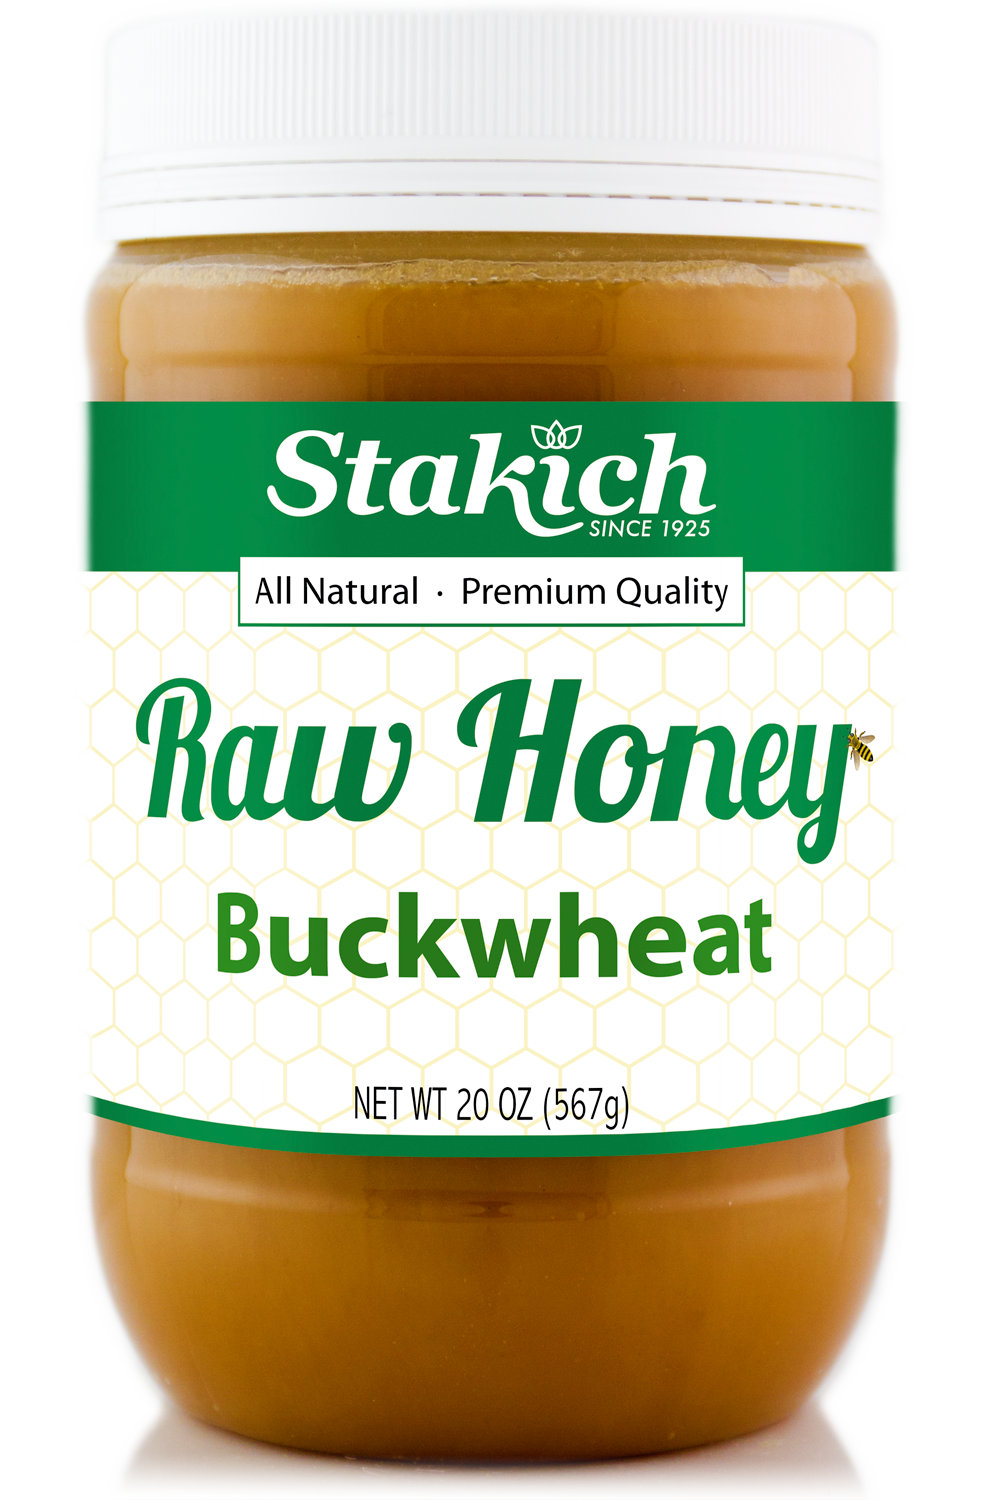 Case of Buckwheat Raw Honey (20 oz)